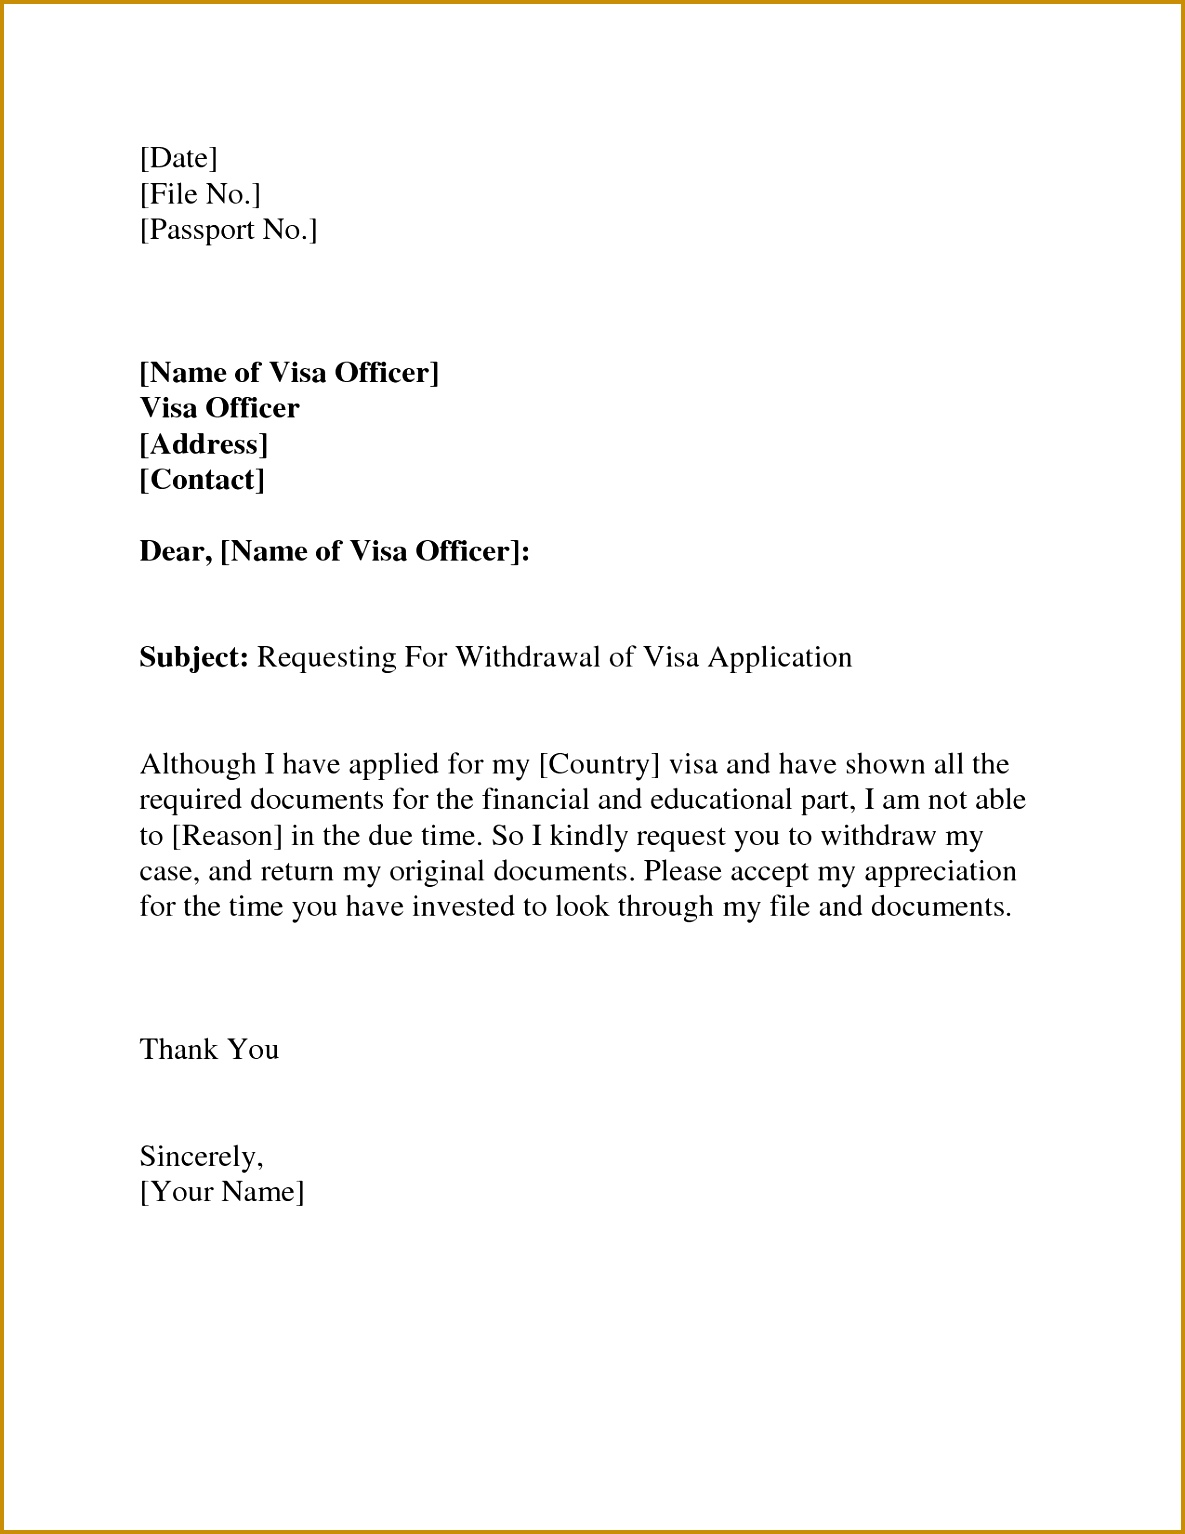 Visa Withdrawal Letter Request Letter Format Letter And EmailVisa Invitation Letter To A Friend Example Application 15341185